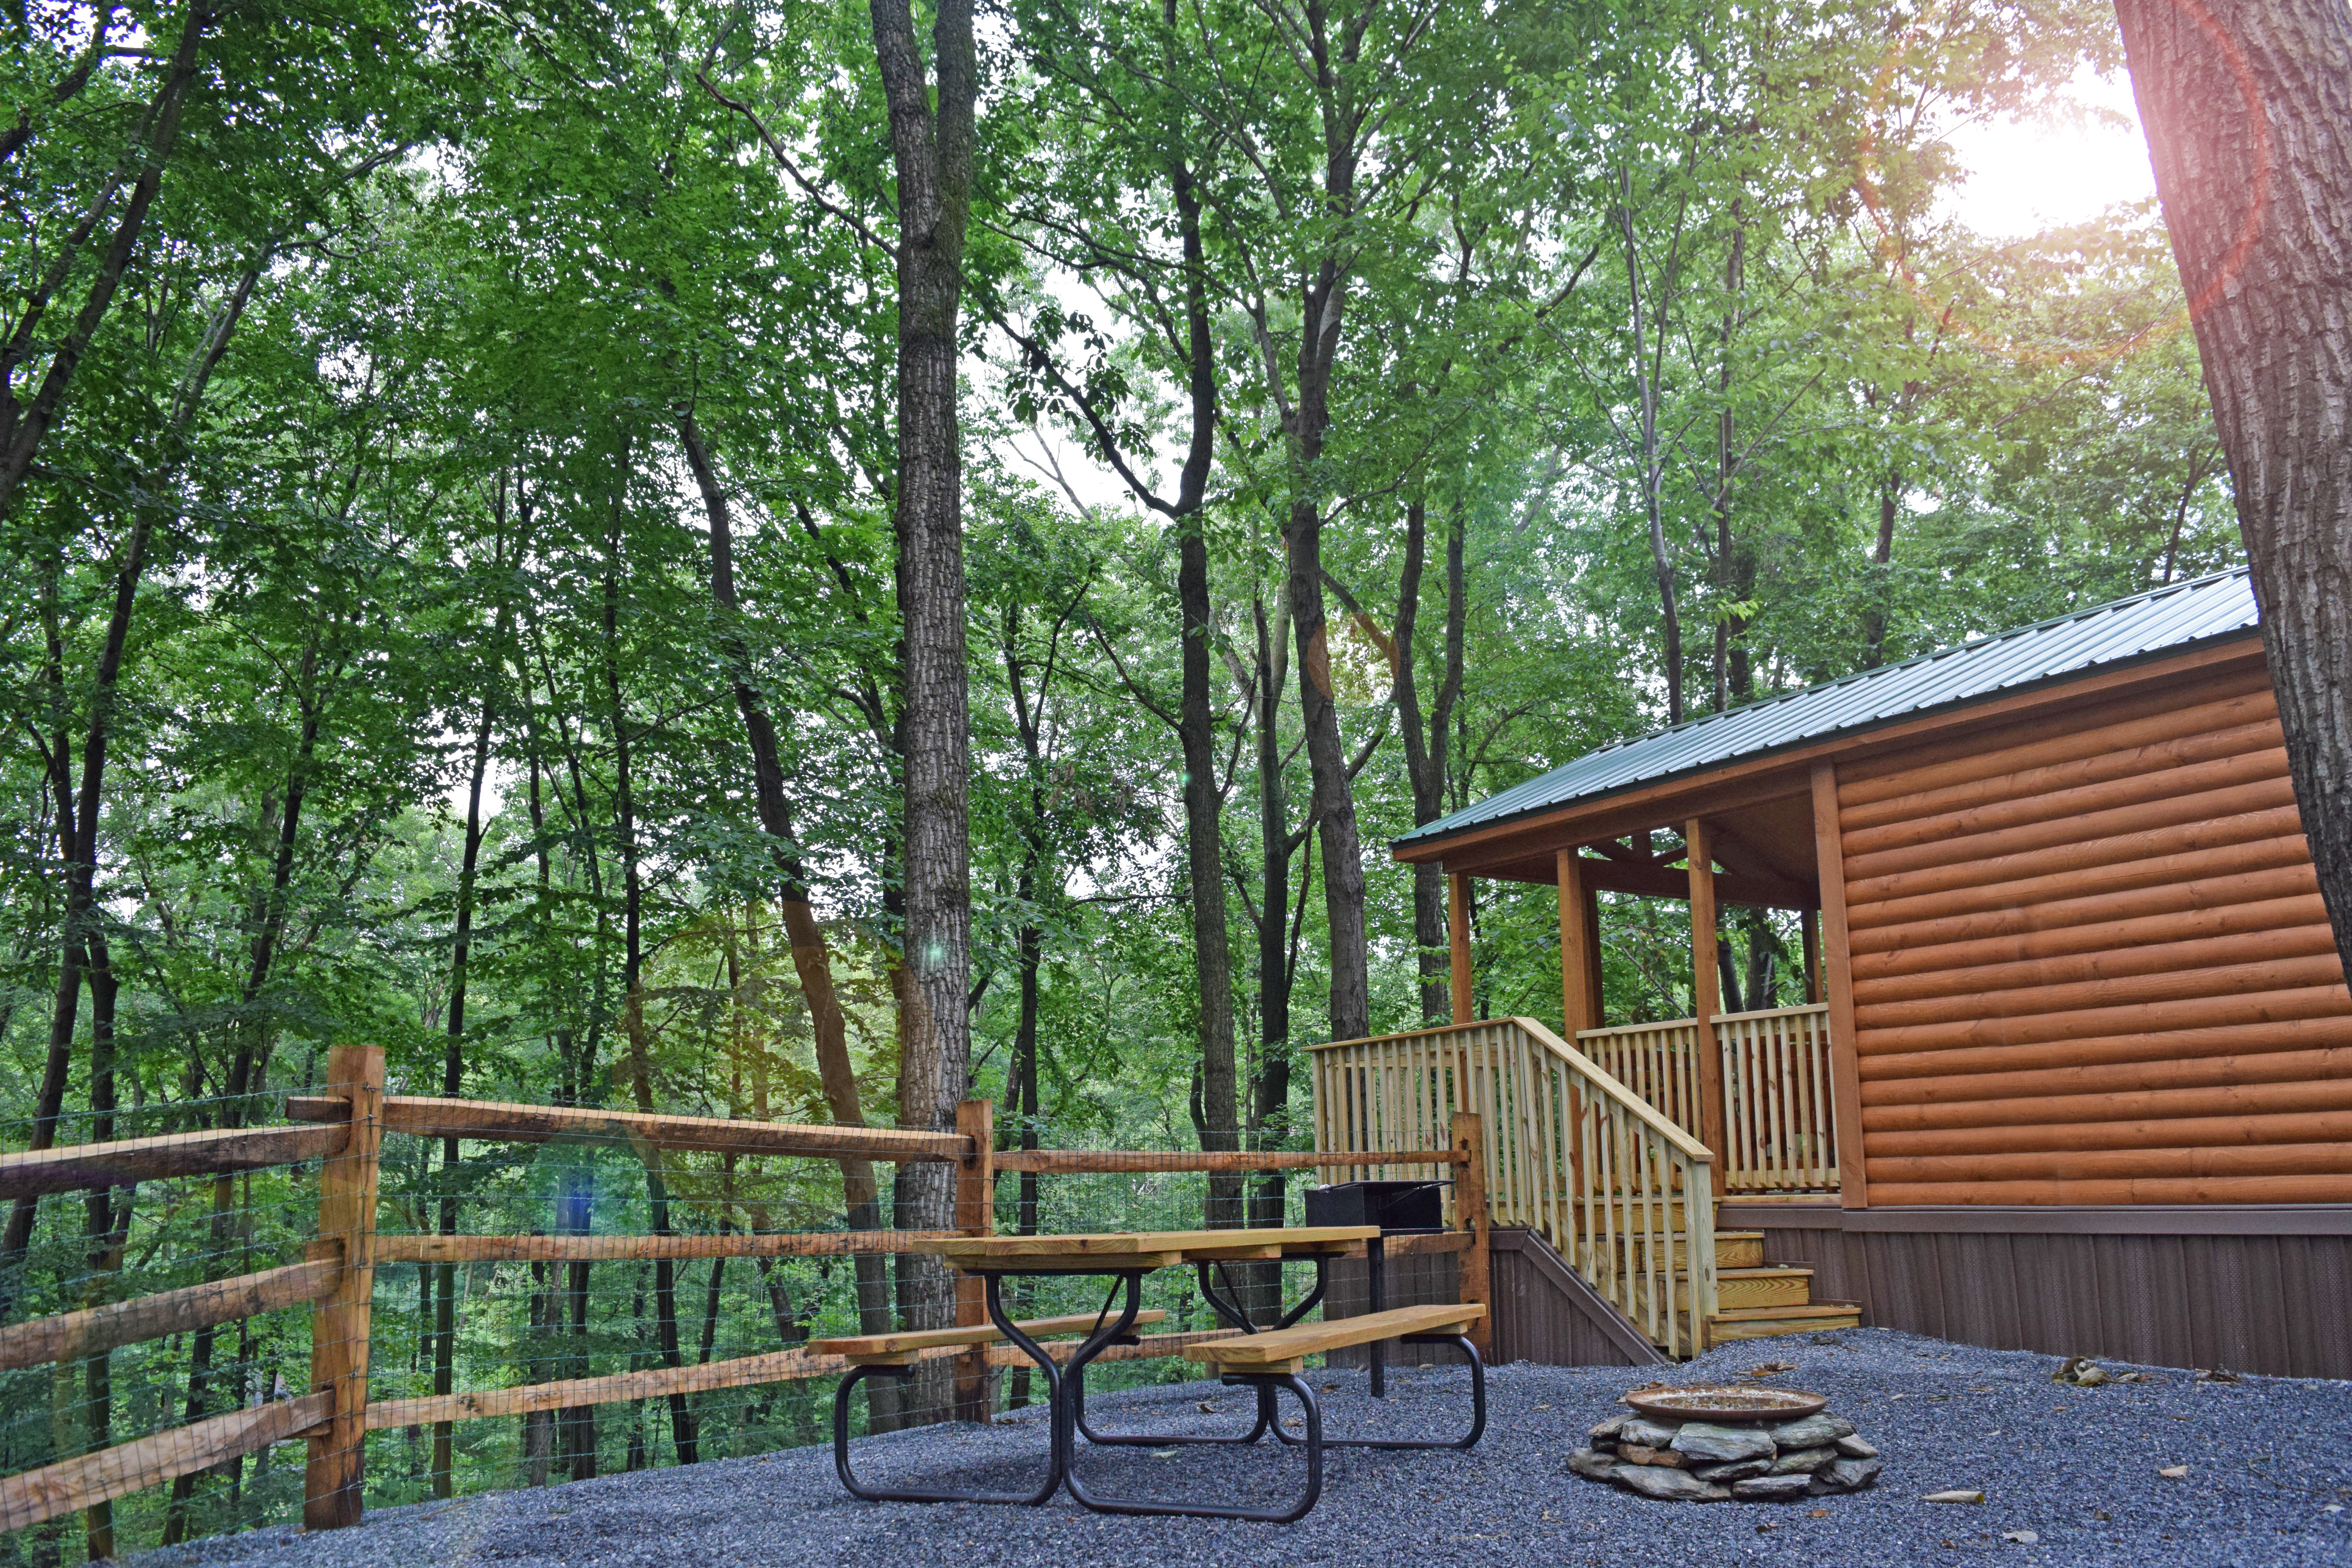 Cabins at Yogi Bear's Jellystone Park, Quarryville PA